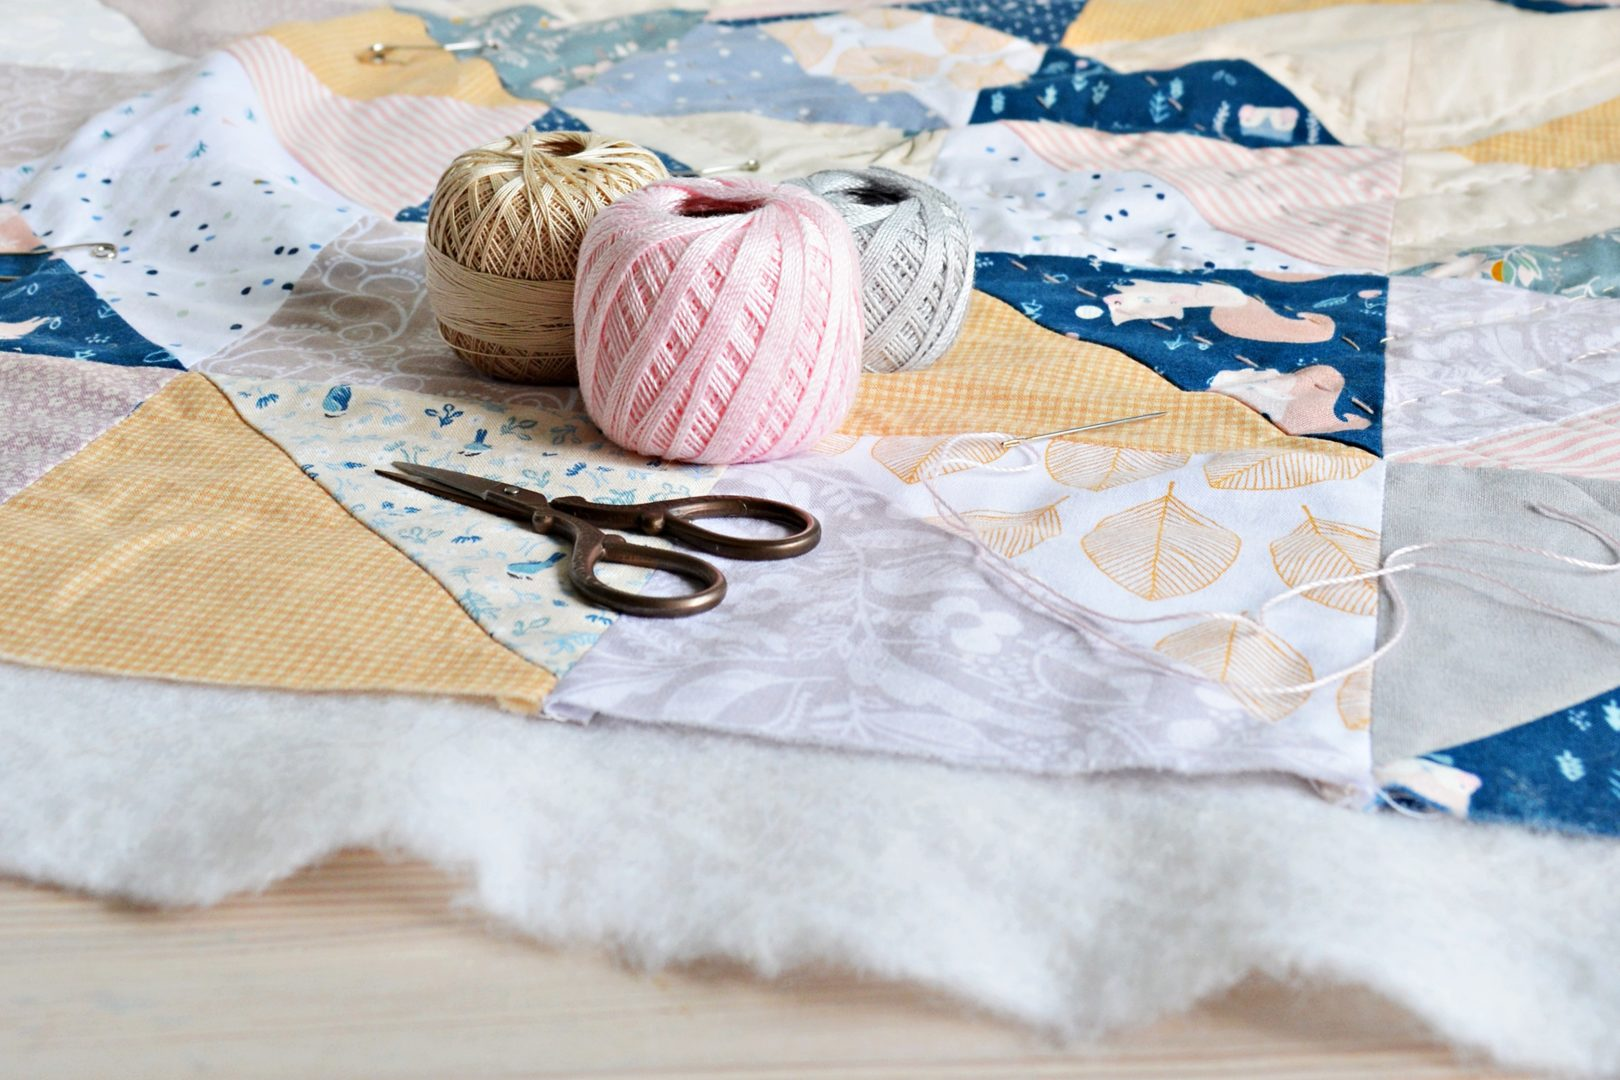 Hand stitched quilt on table with cotton thread, needle and scissors